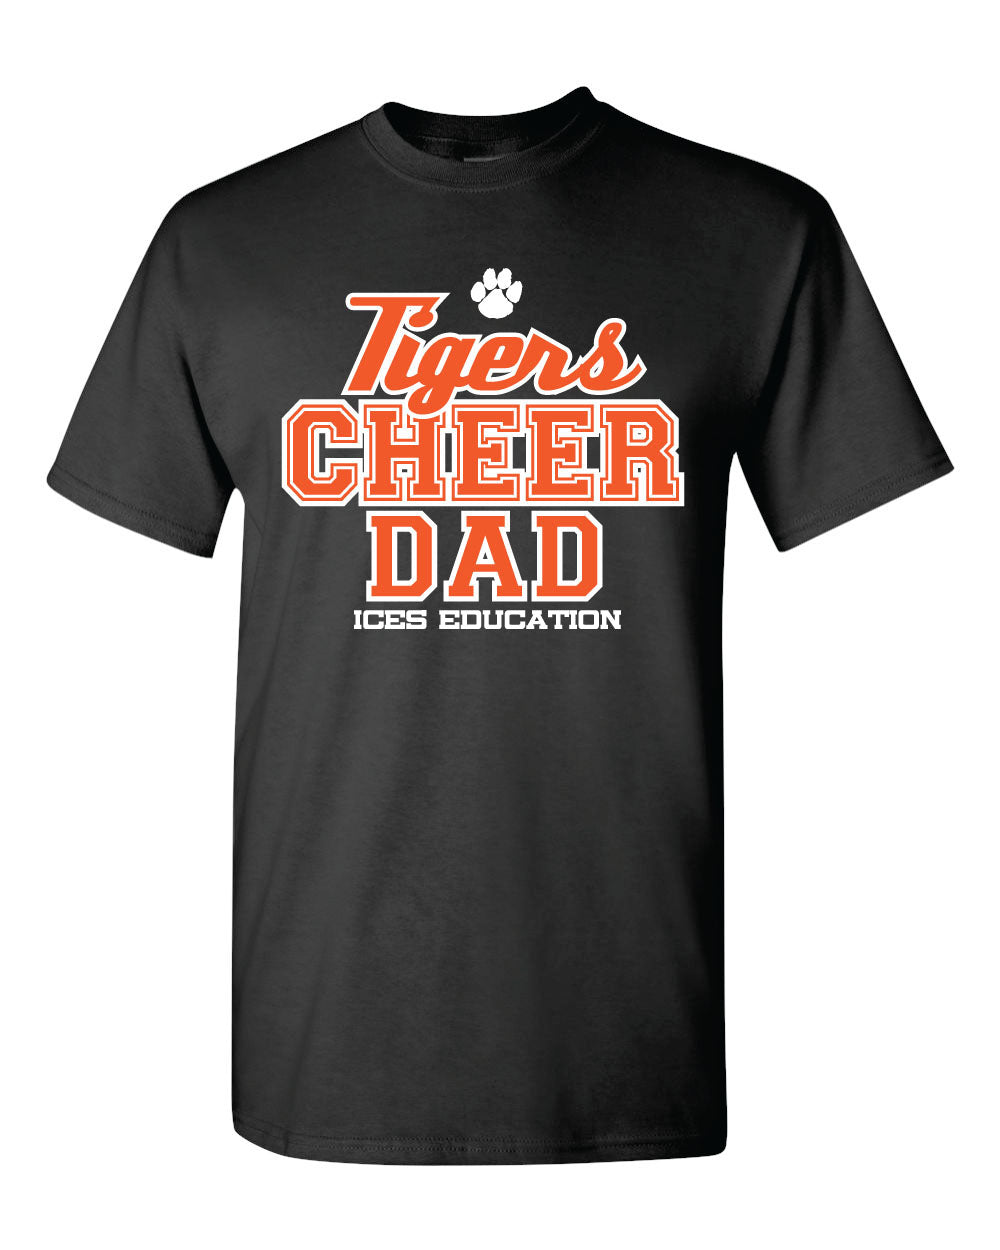 Eastmont Int. Cheer - Tshirt - Cheer Dad